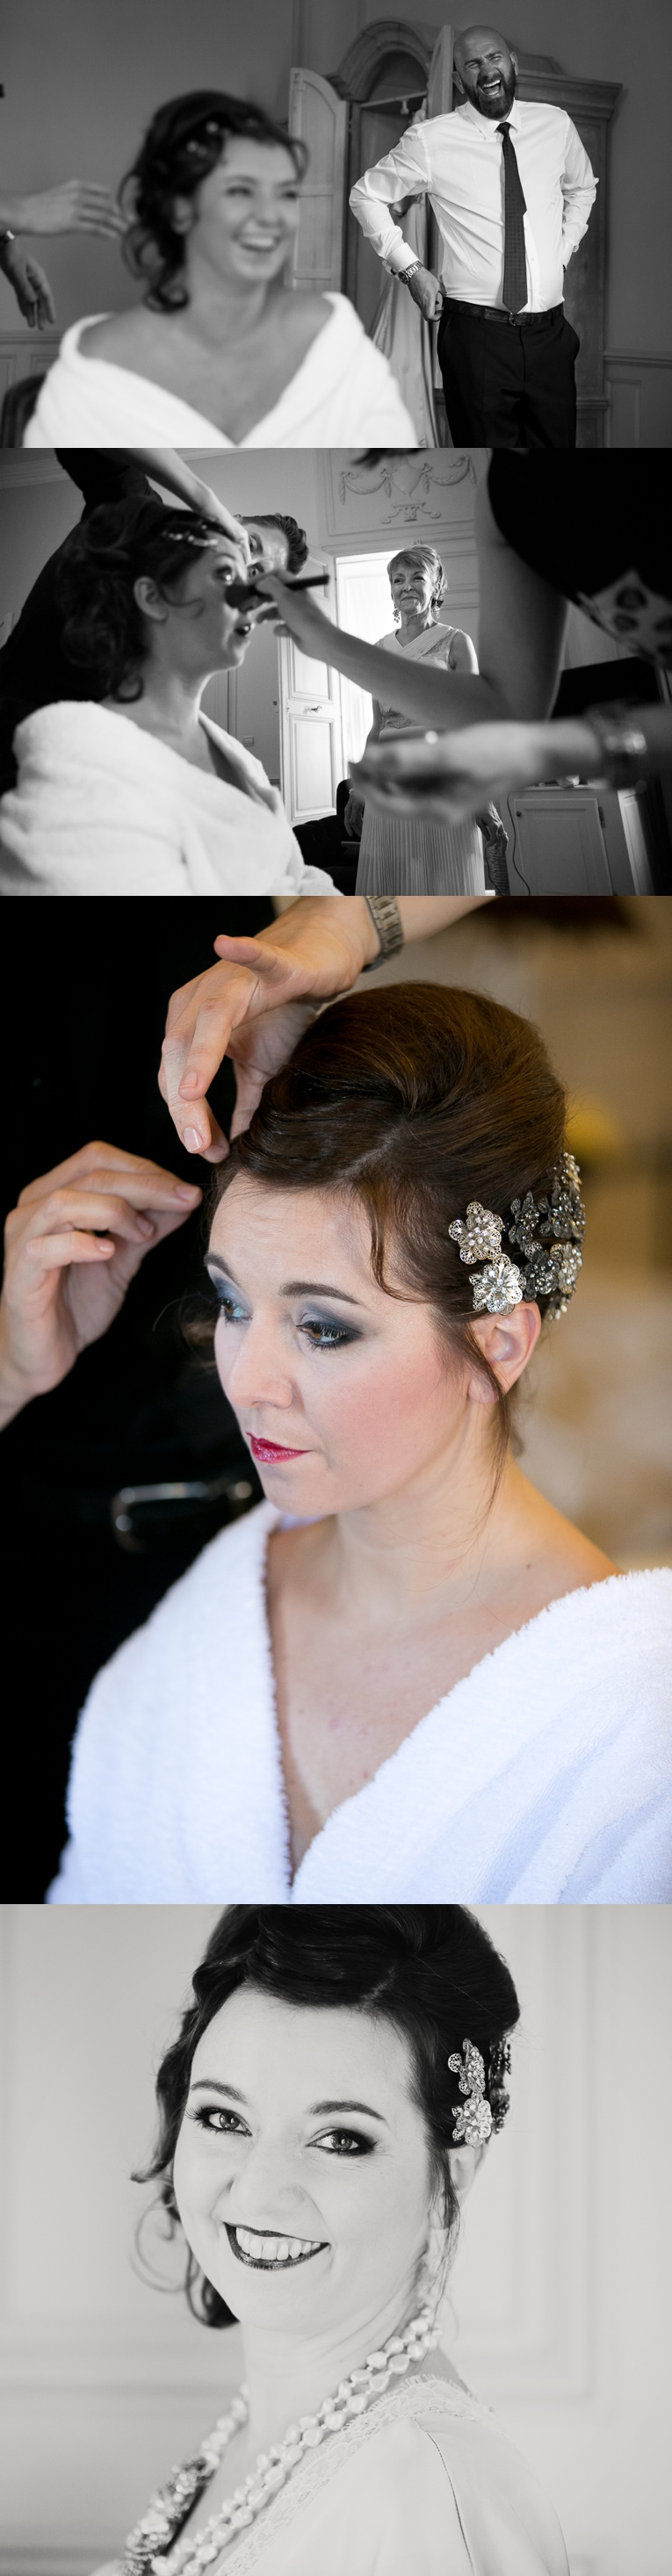 mariage-chateau-rochegude-provence_0015